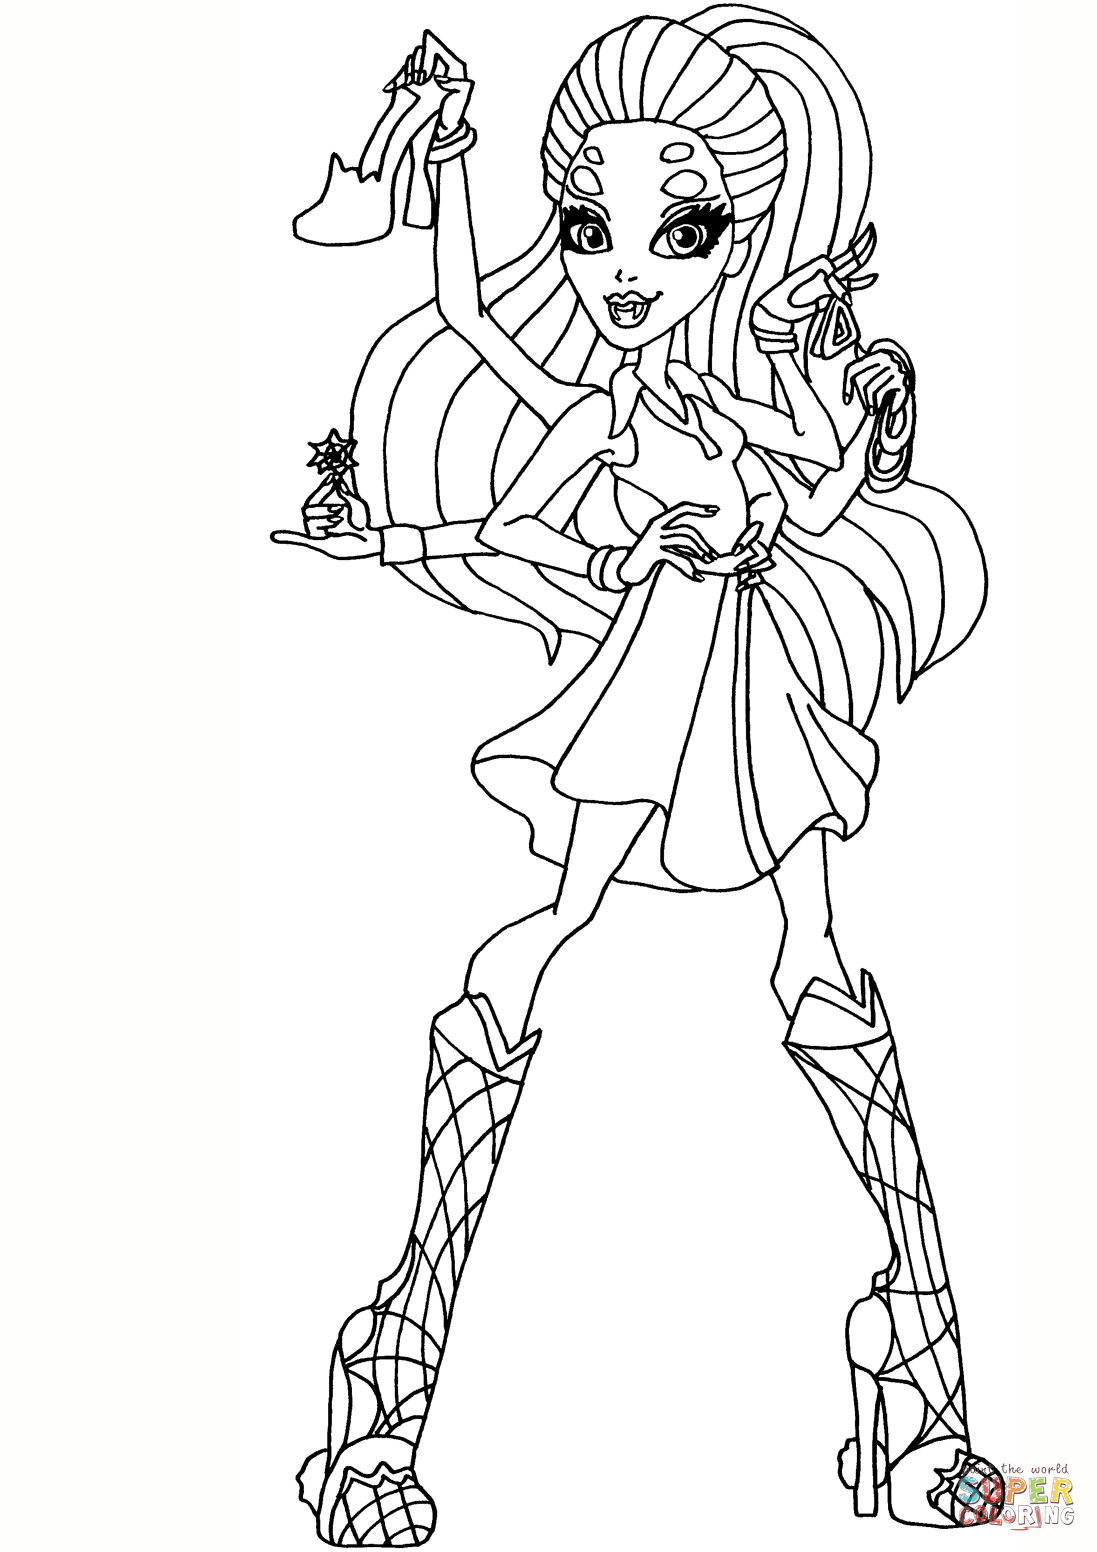 Wydowna Spider Coloring Page Free Printable Coloring Pages